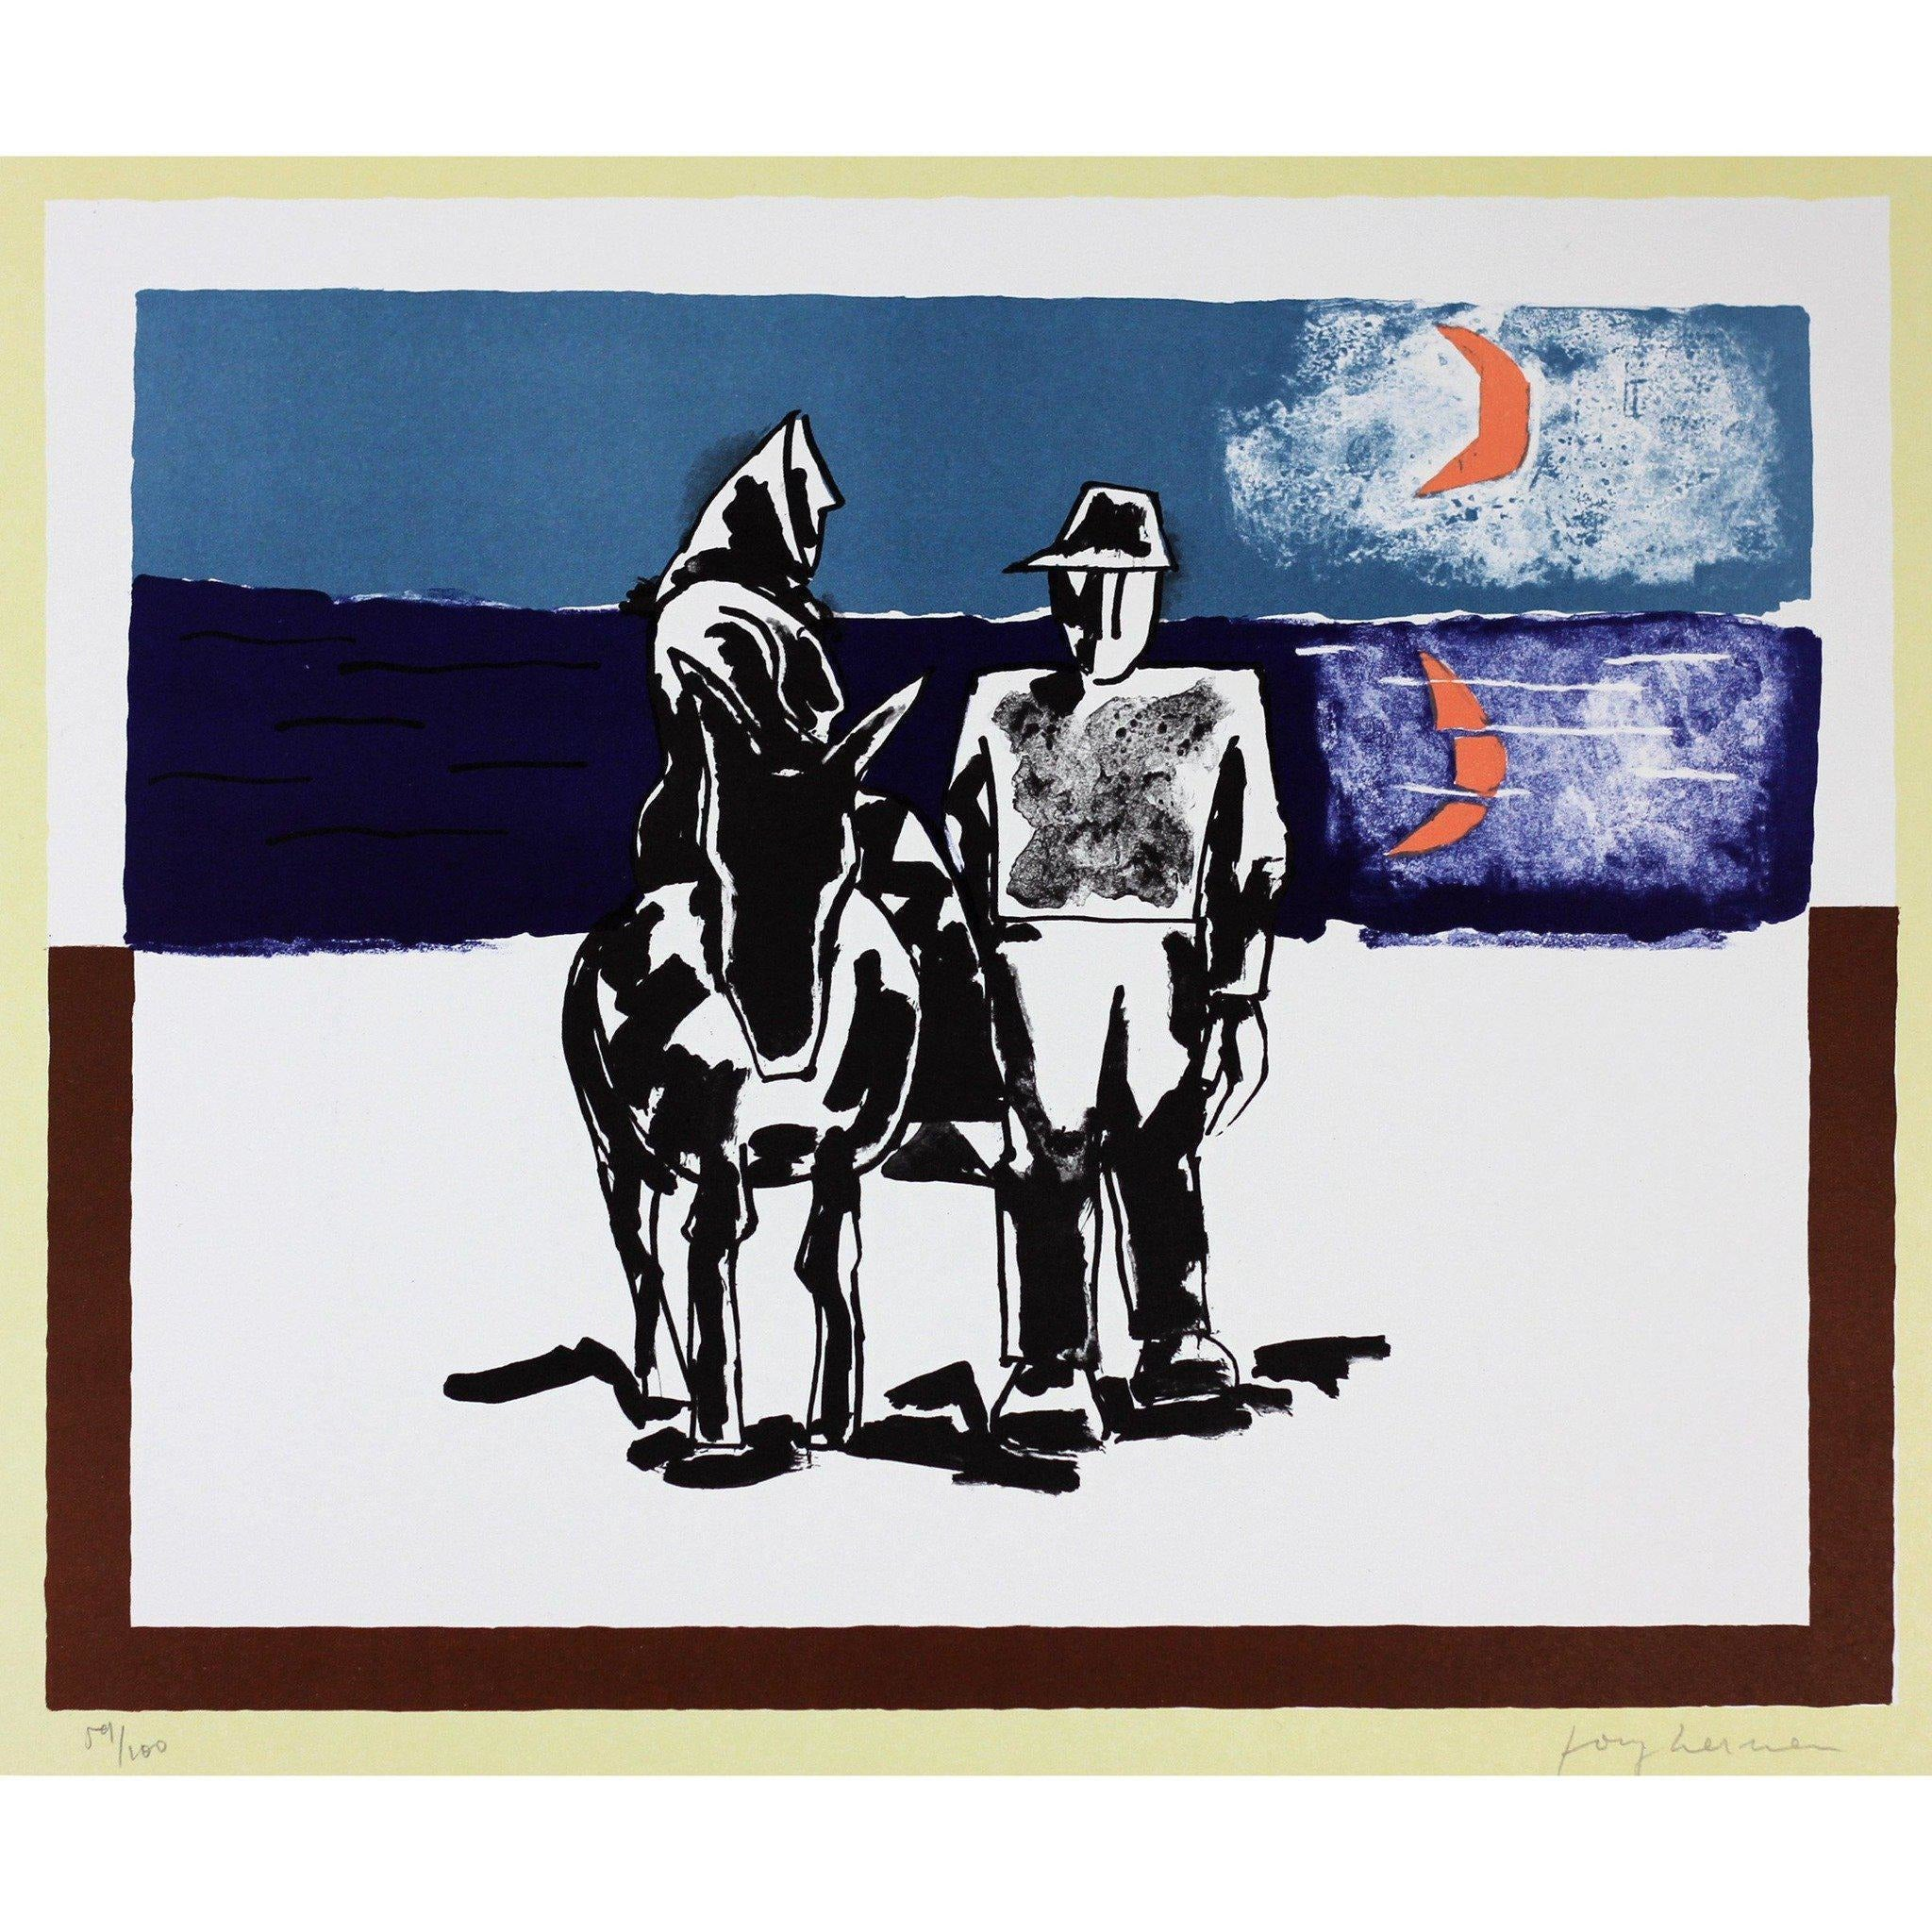 Josef Herman Signed Ltd Ed Print - On the way home